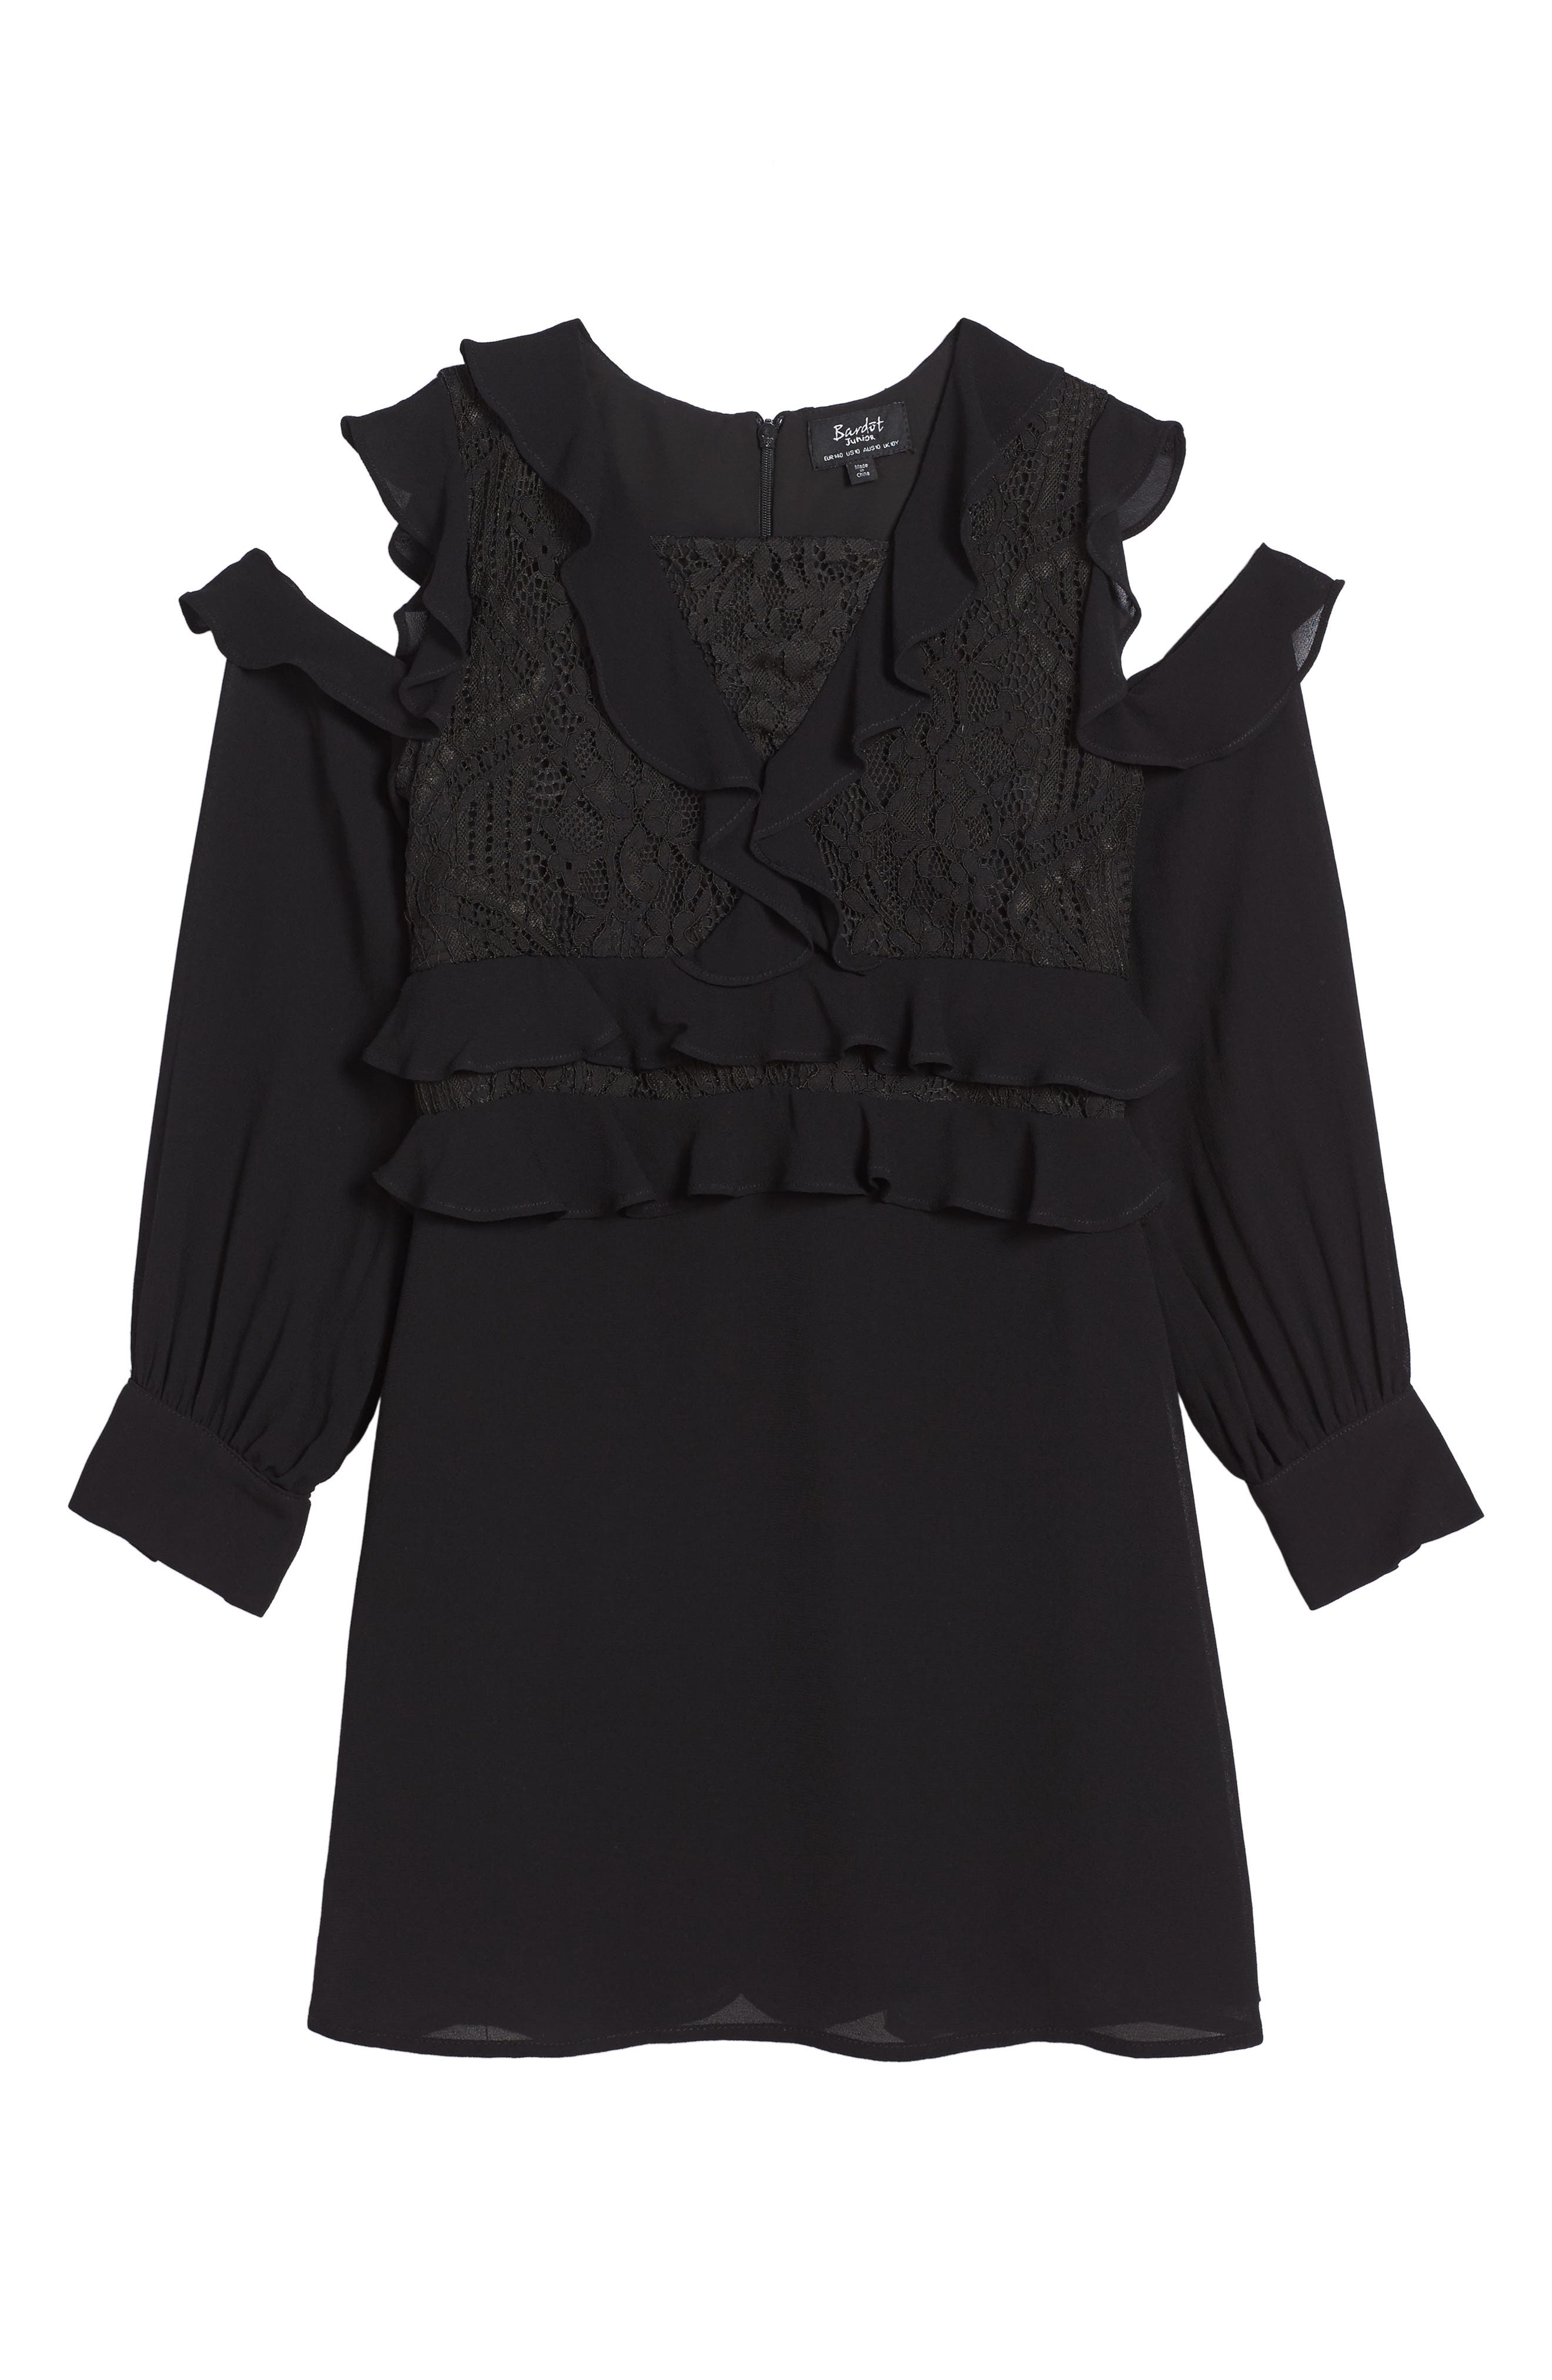 Alternate Image 1 Selected - Bardot Junior Ruffle Cold Shoulder Dress (Big Girls)